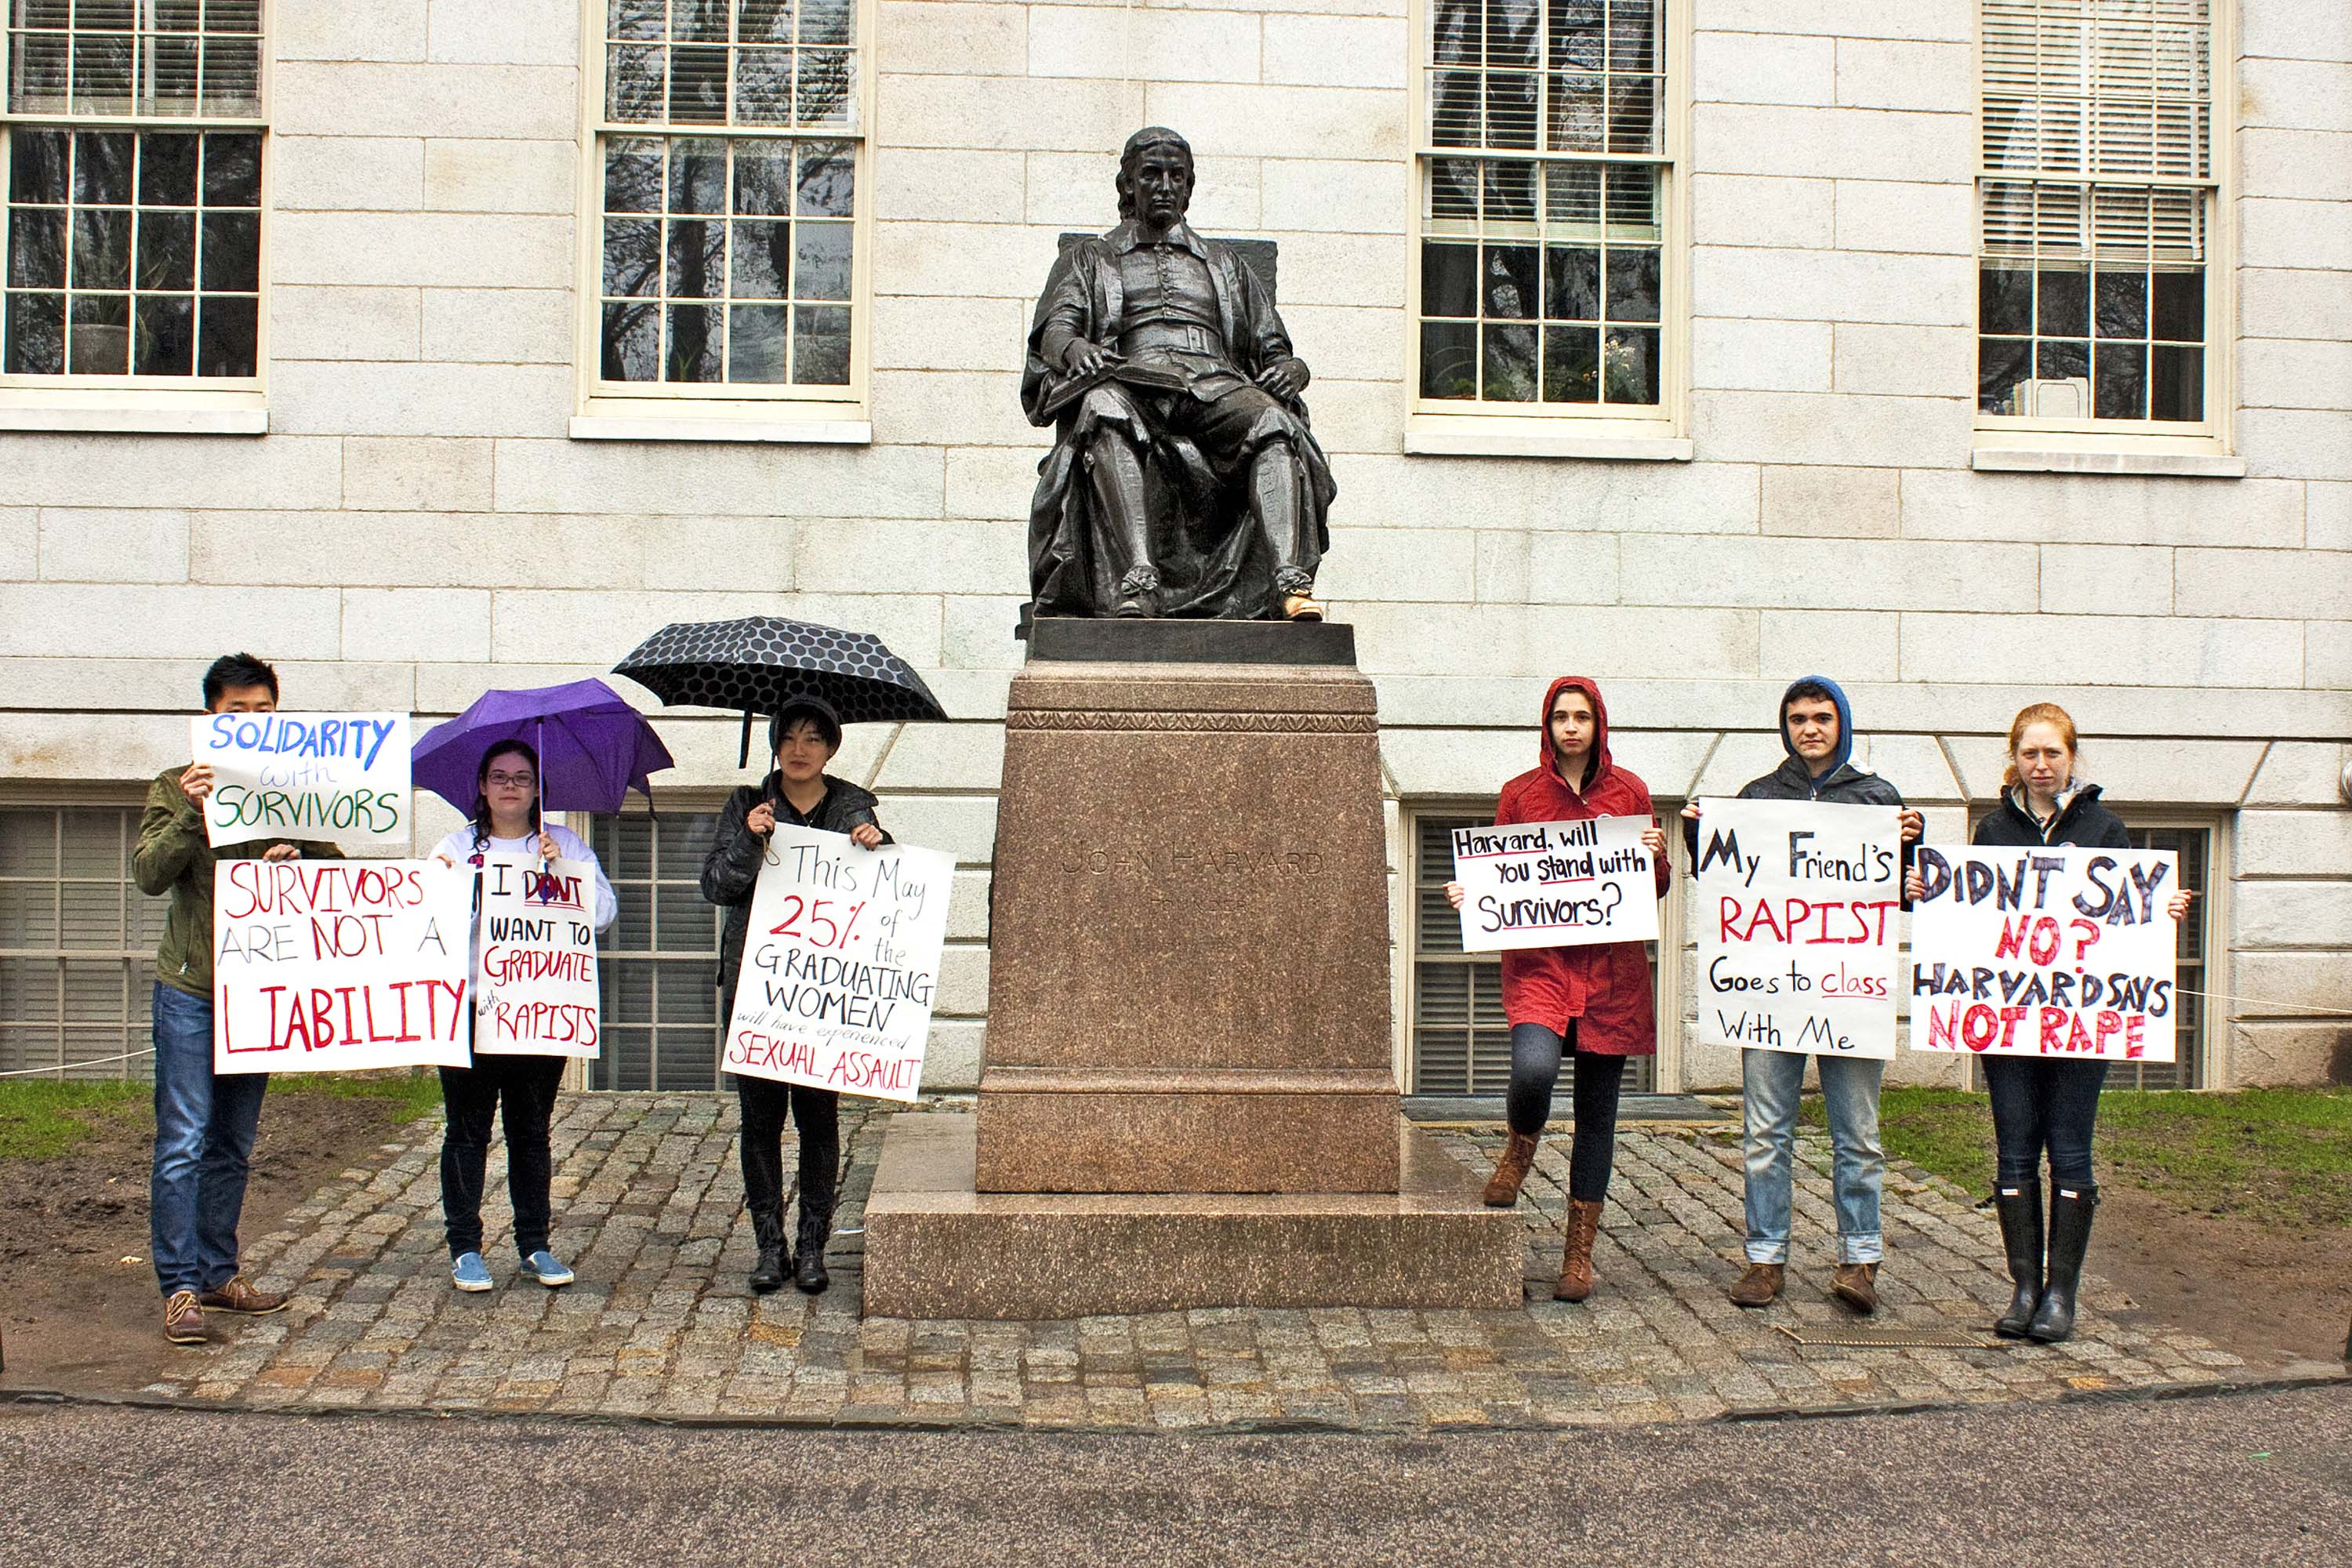 Students protest Harvard's handling of sexual-assault allegations in front of a statue of John Harvard in April.